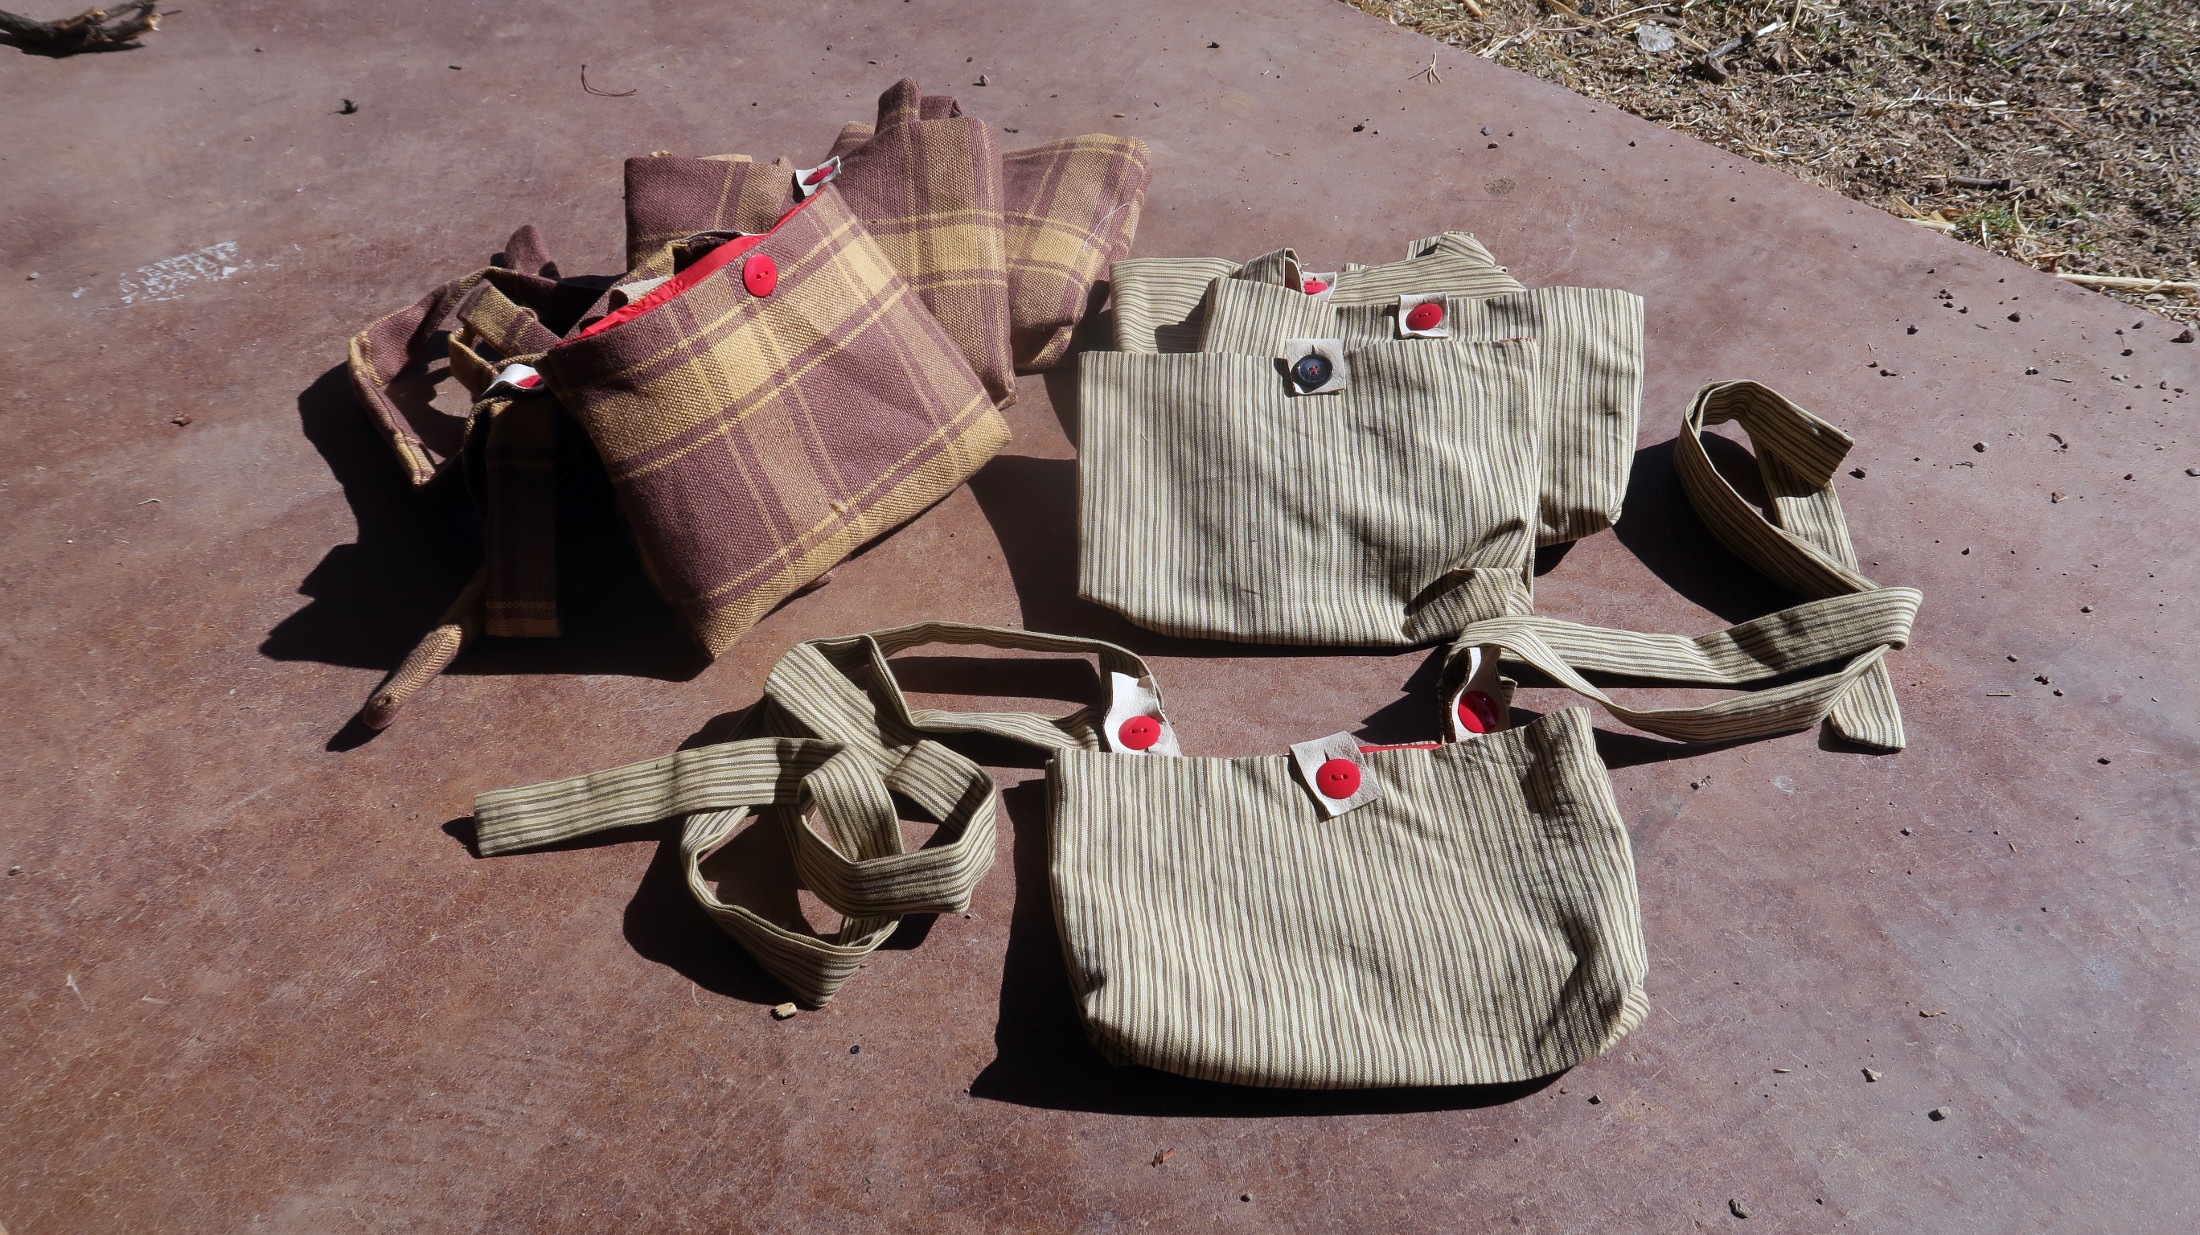 Berry-picking bags